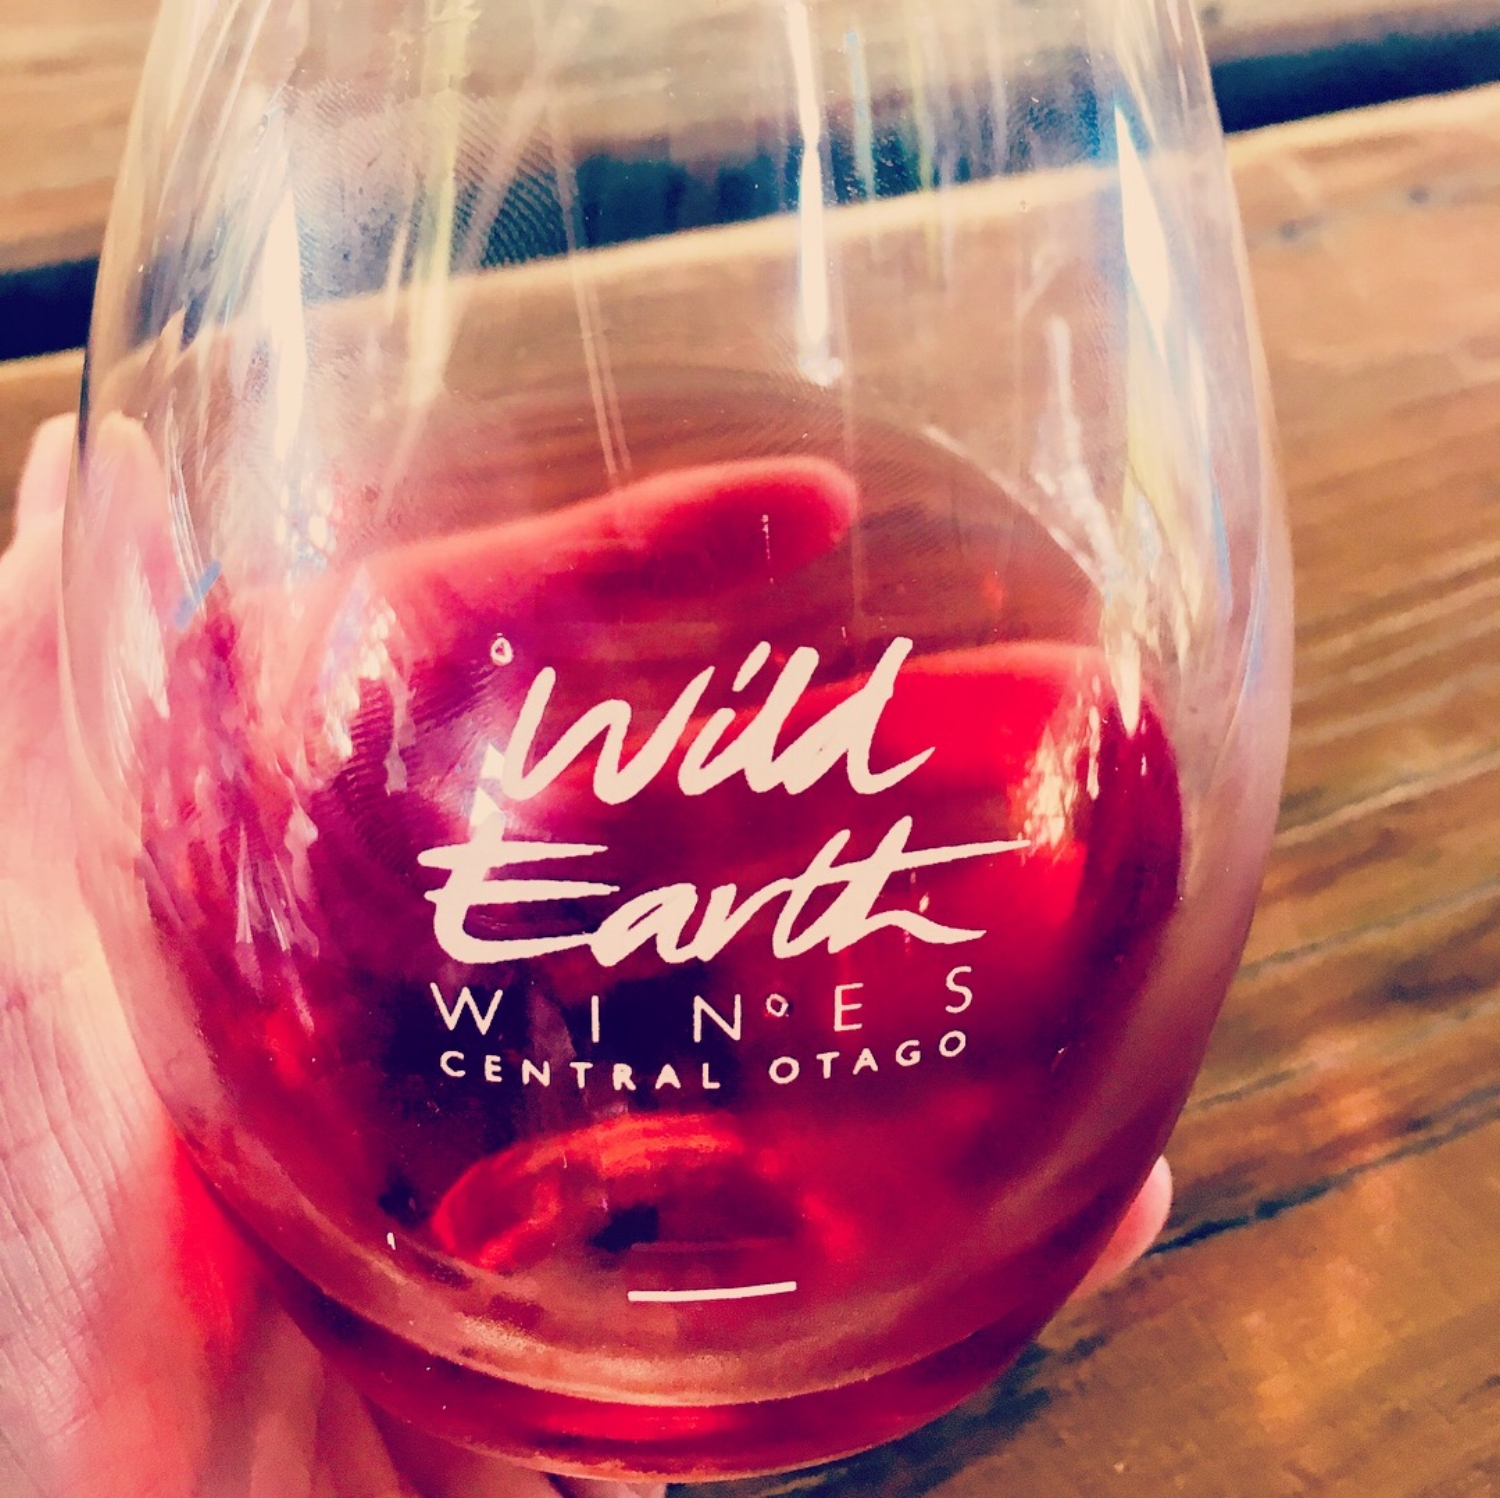 Wild Earth 2017 Rosé. Blended: 30% Pinot Gris / 70% Pinot Noir 100% Cherry-licious!